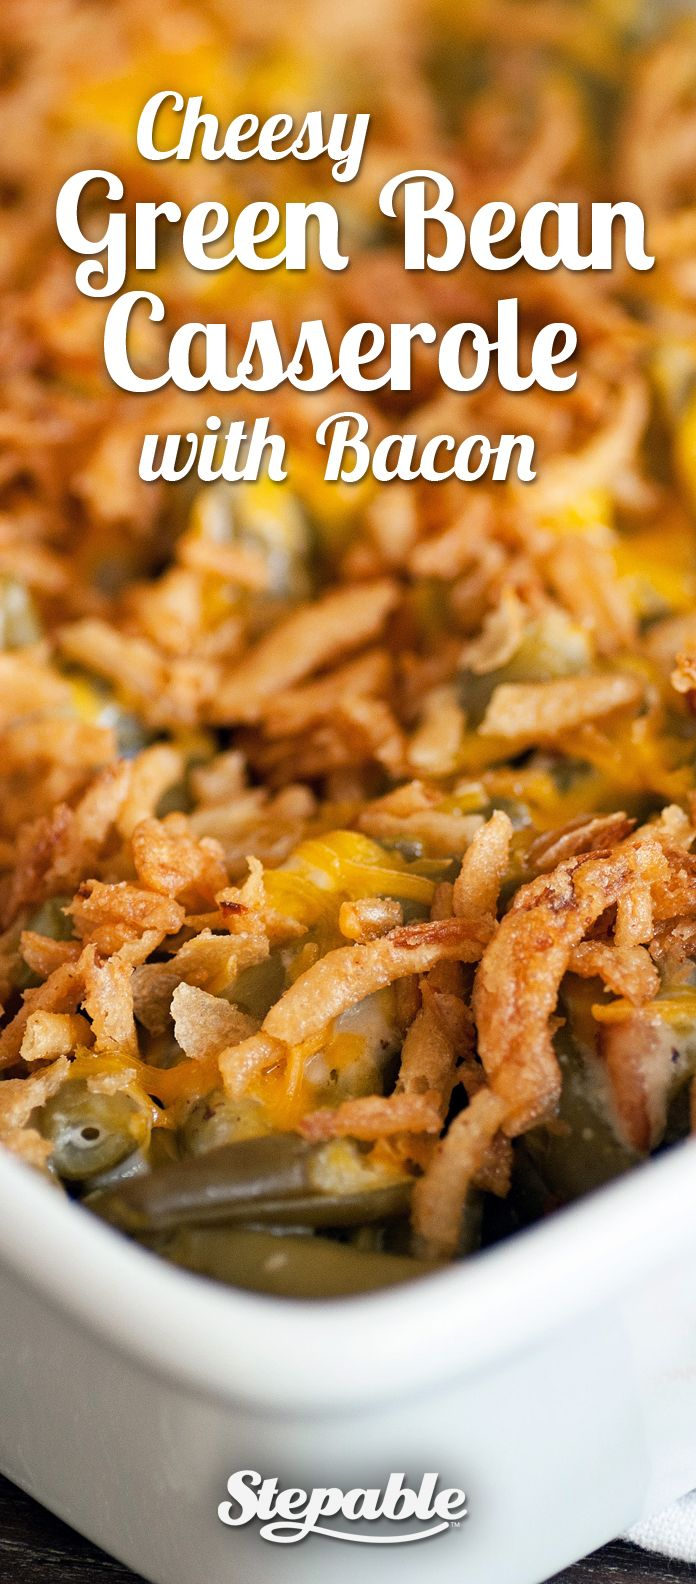 Easy Green Bean Casserole without canned cream soup ~ classic green bean casserole with a homemade sauce that makes it extra creamy!